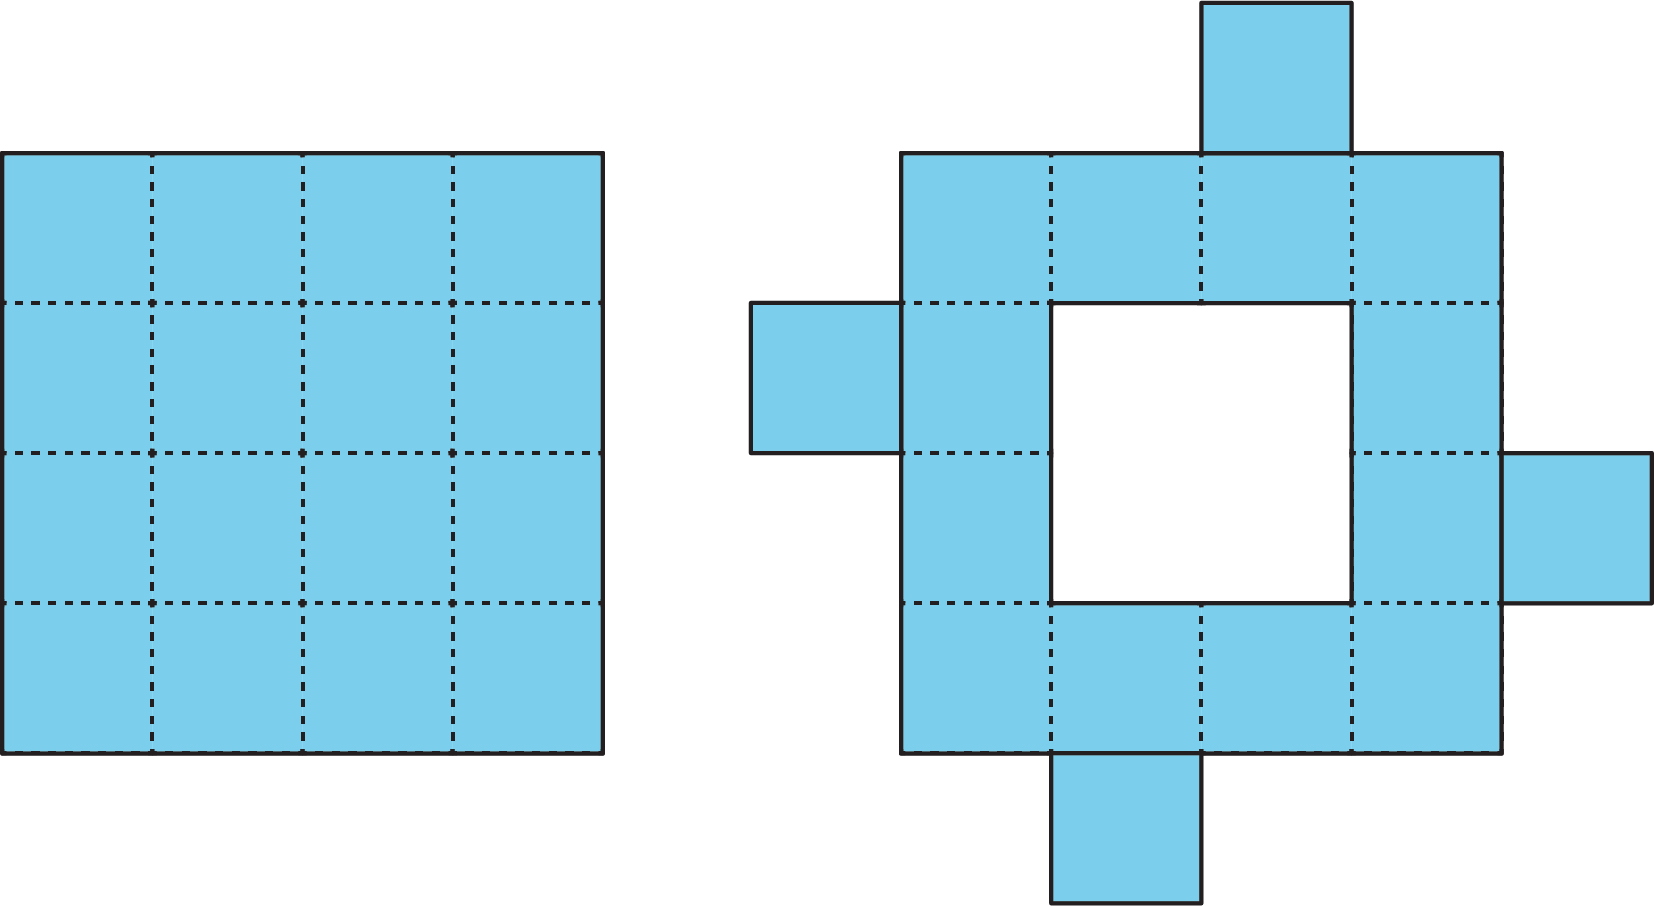 Two shapes. The first is a square comprised of 16 small squares arranged in four rows of 4. The second image has the center four squares removed and a square added to the outside of each side of the square.